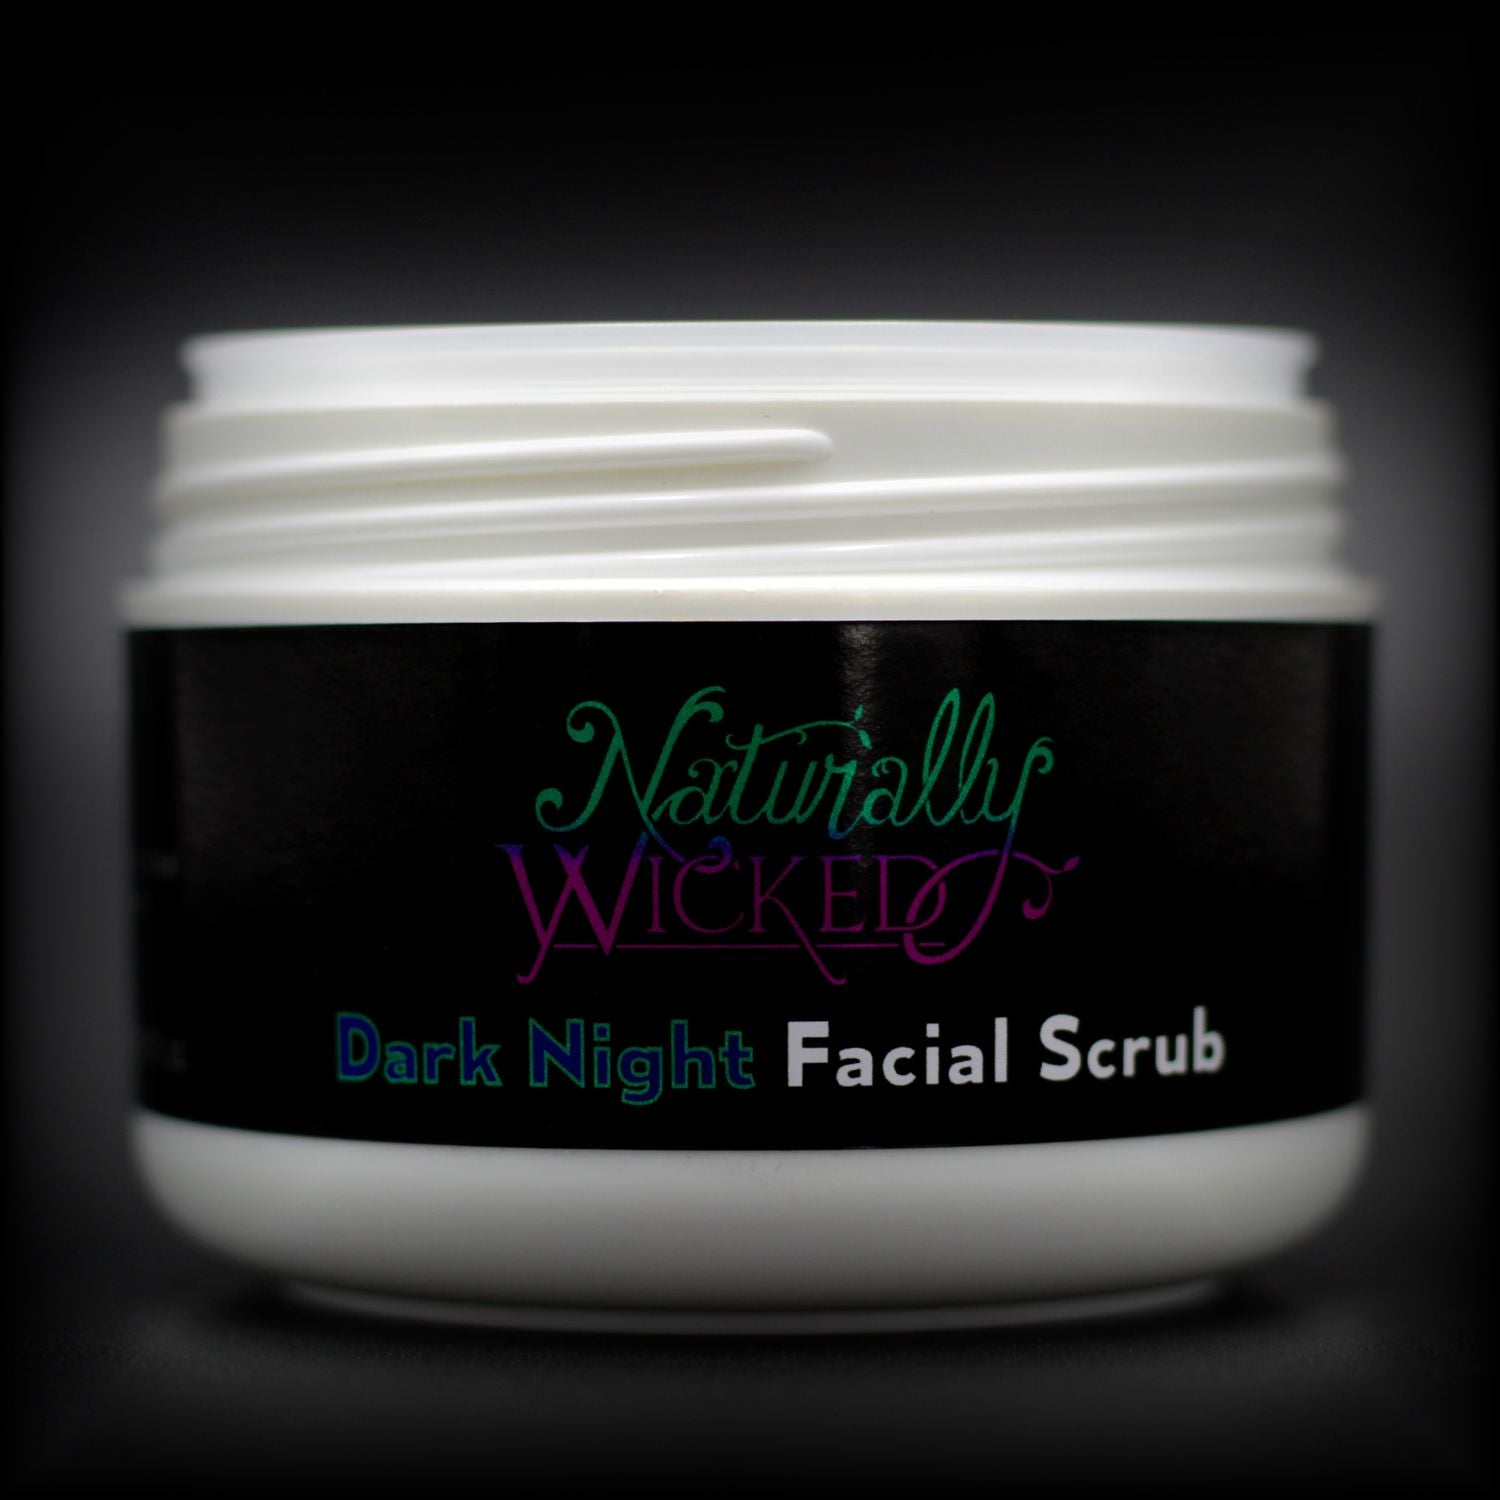 Naturally Wicked Dark Night Facial Scrub Container, Seal & Screw Connection Without Lid